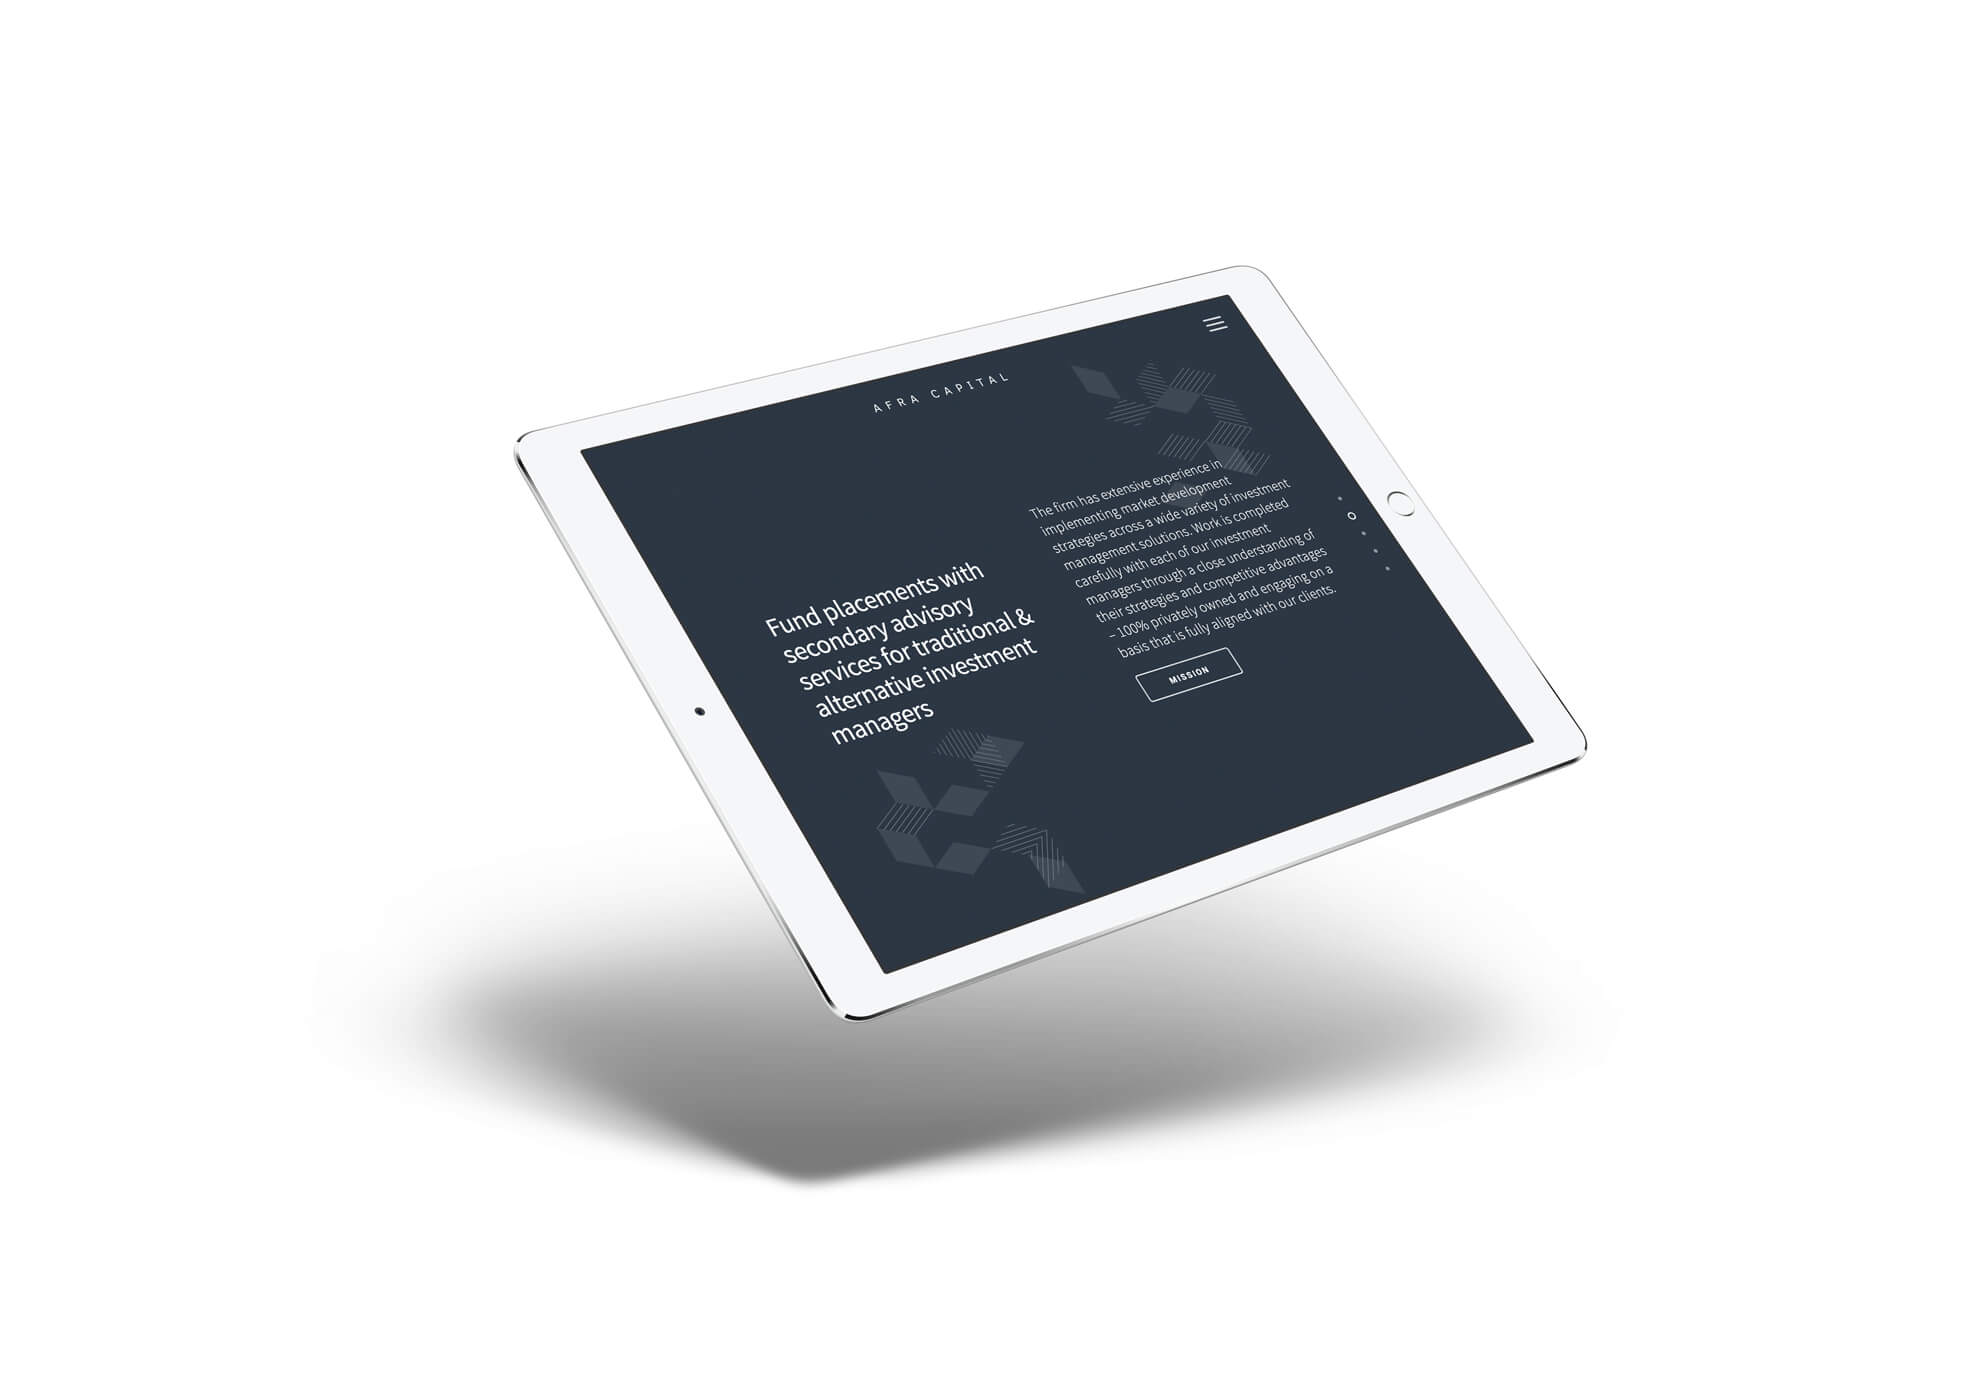 Afra Capital Web Design on iPad